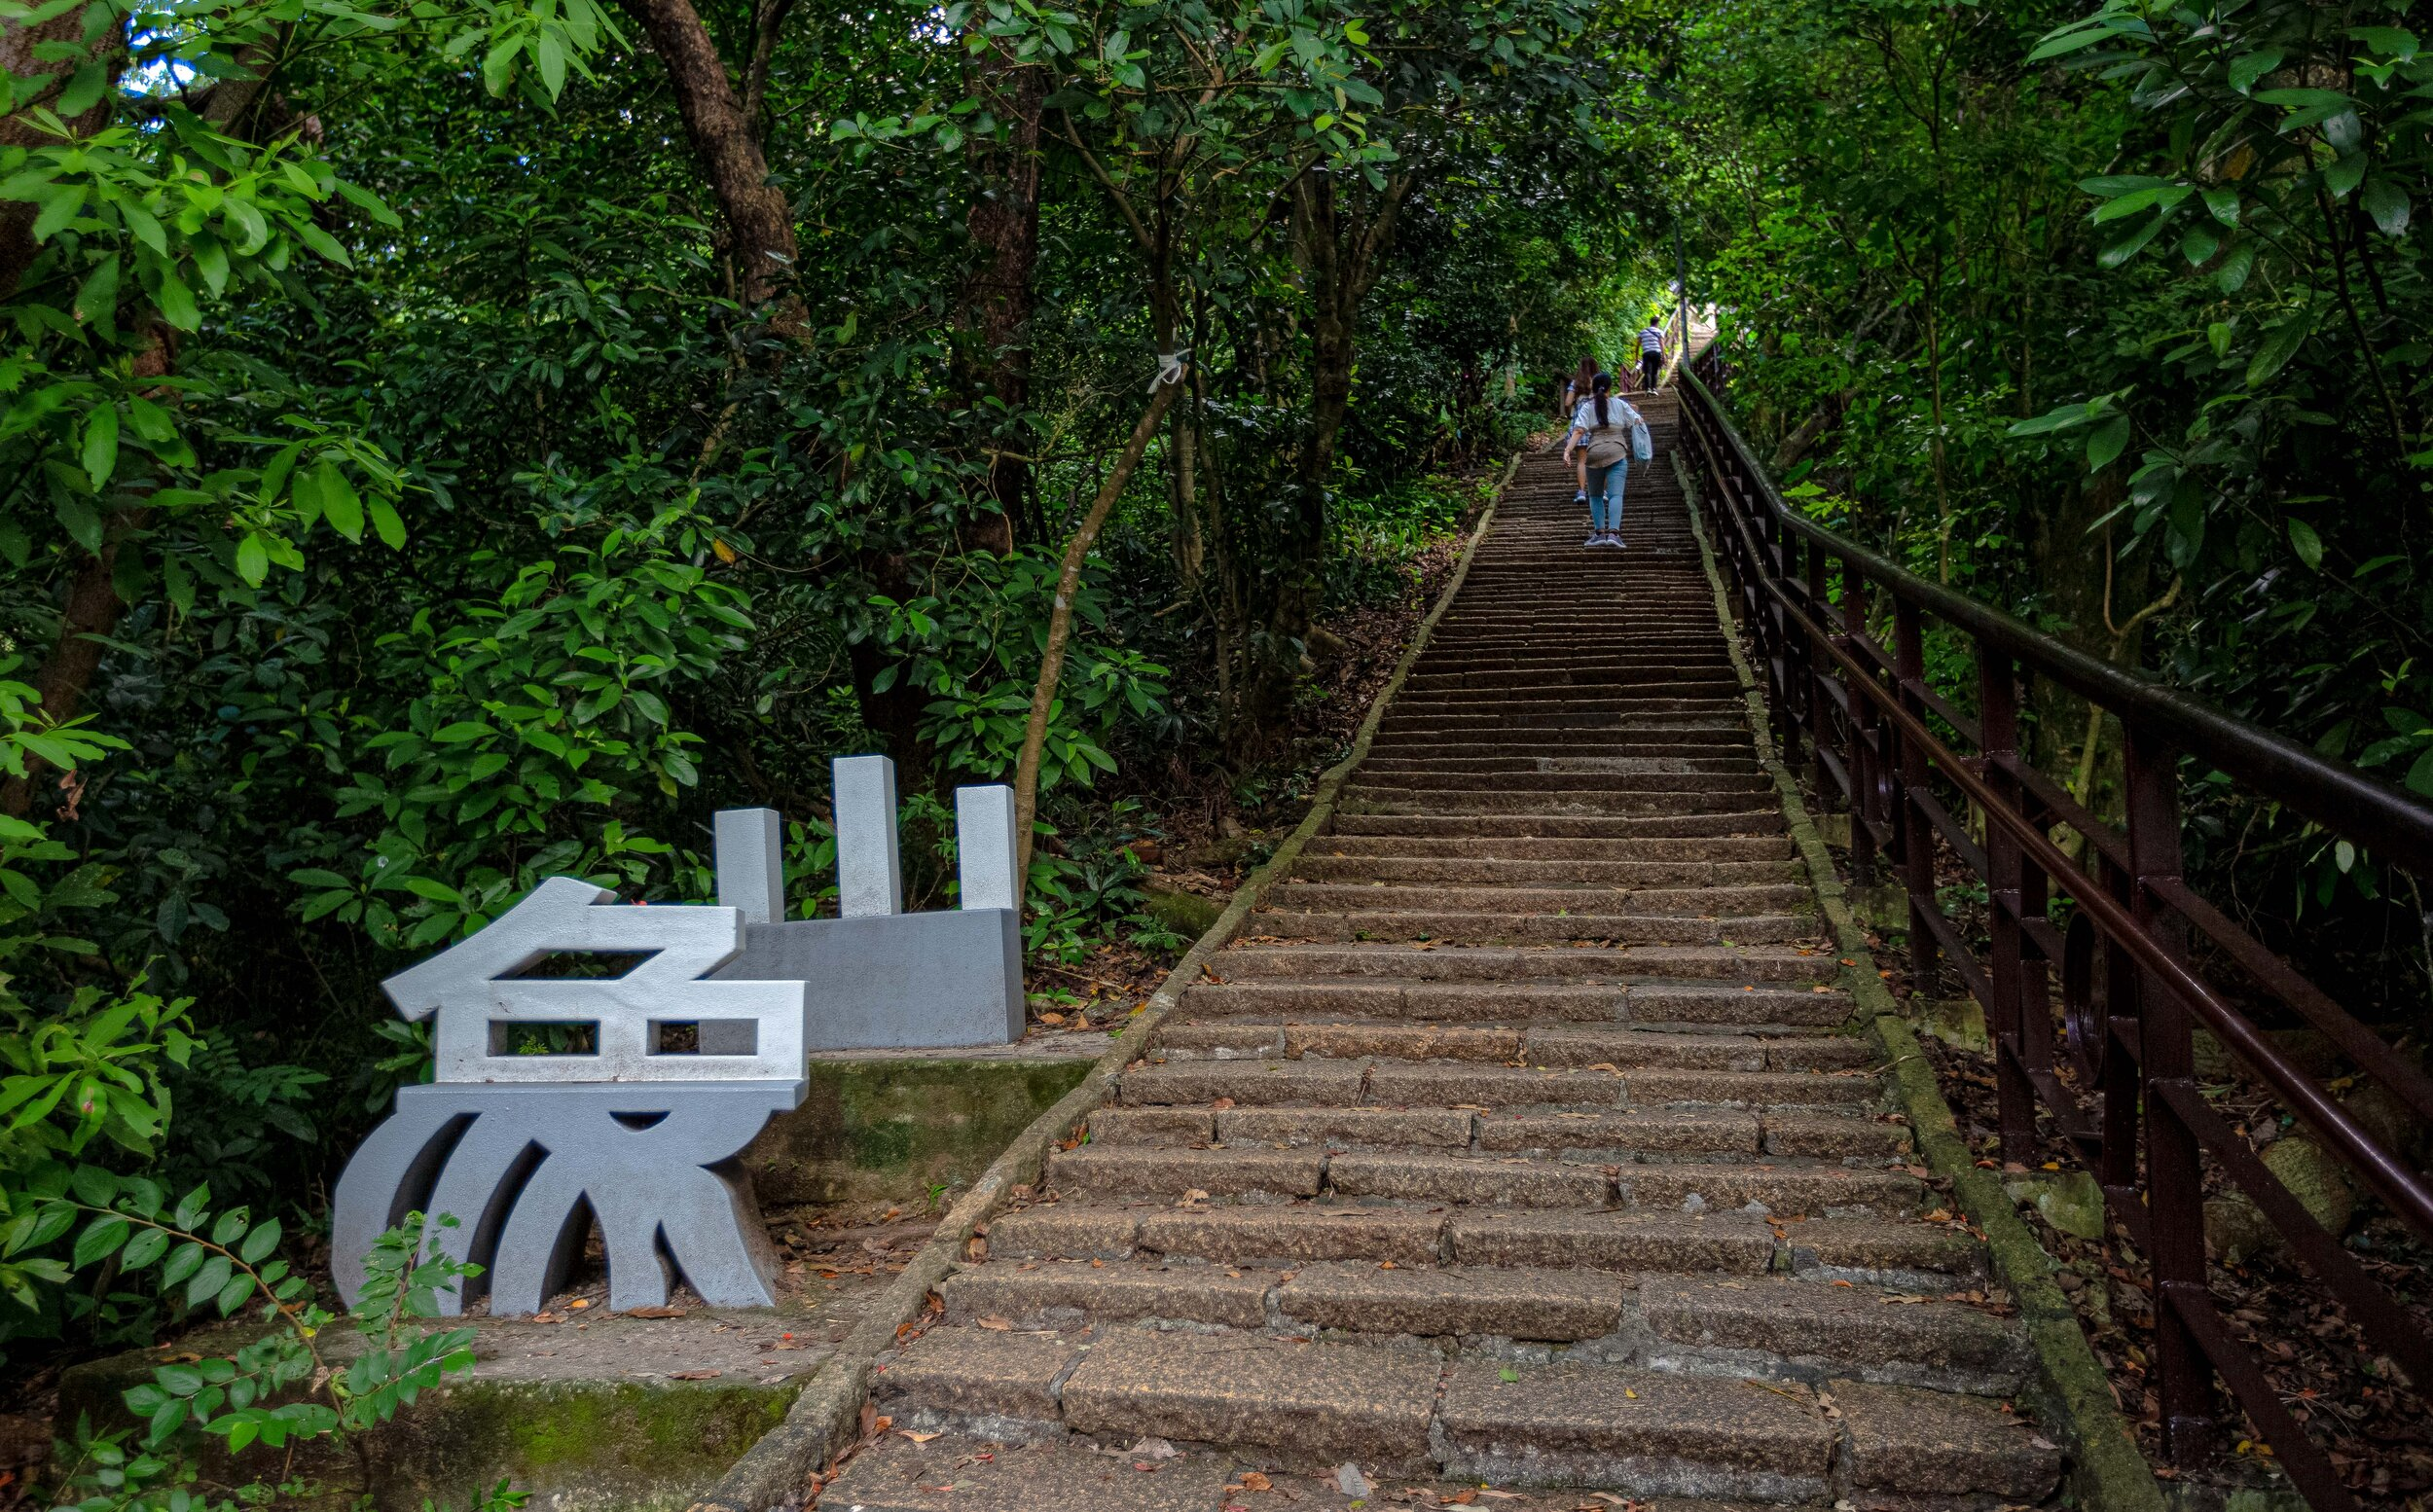 Benches designed in the shape of the Chinese characters for Elephant Mountain.